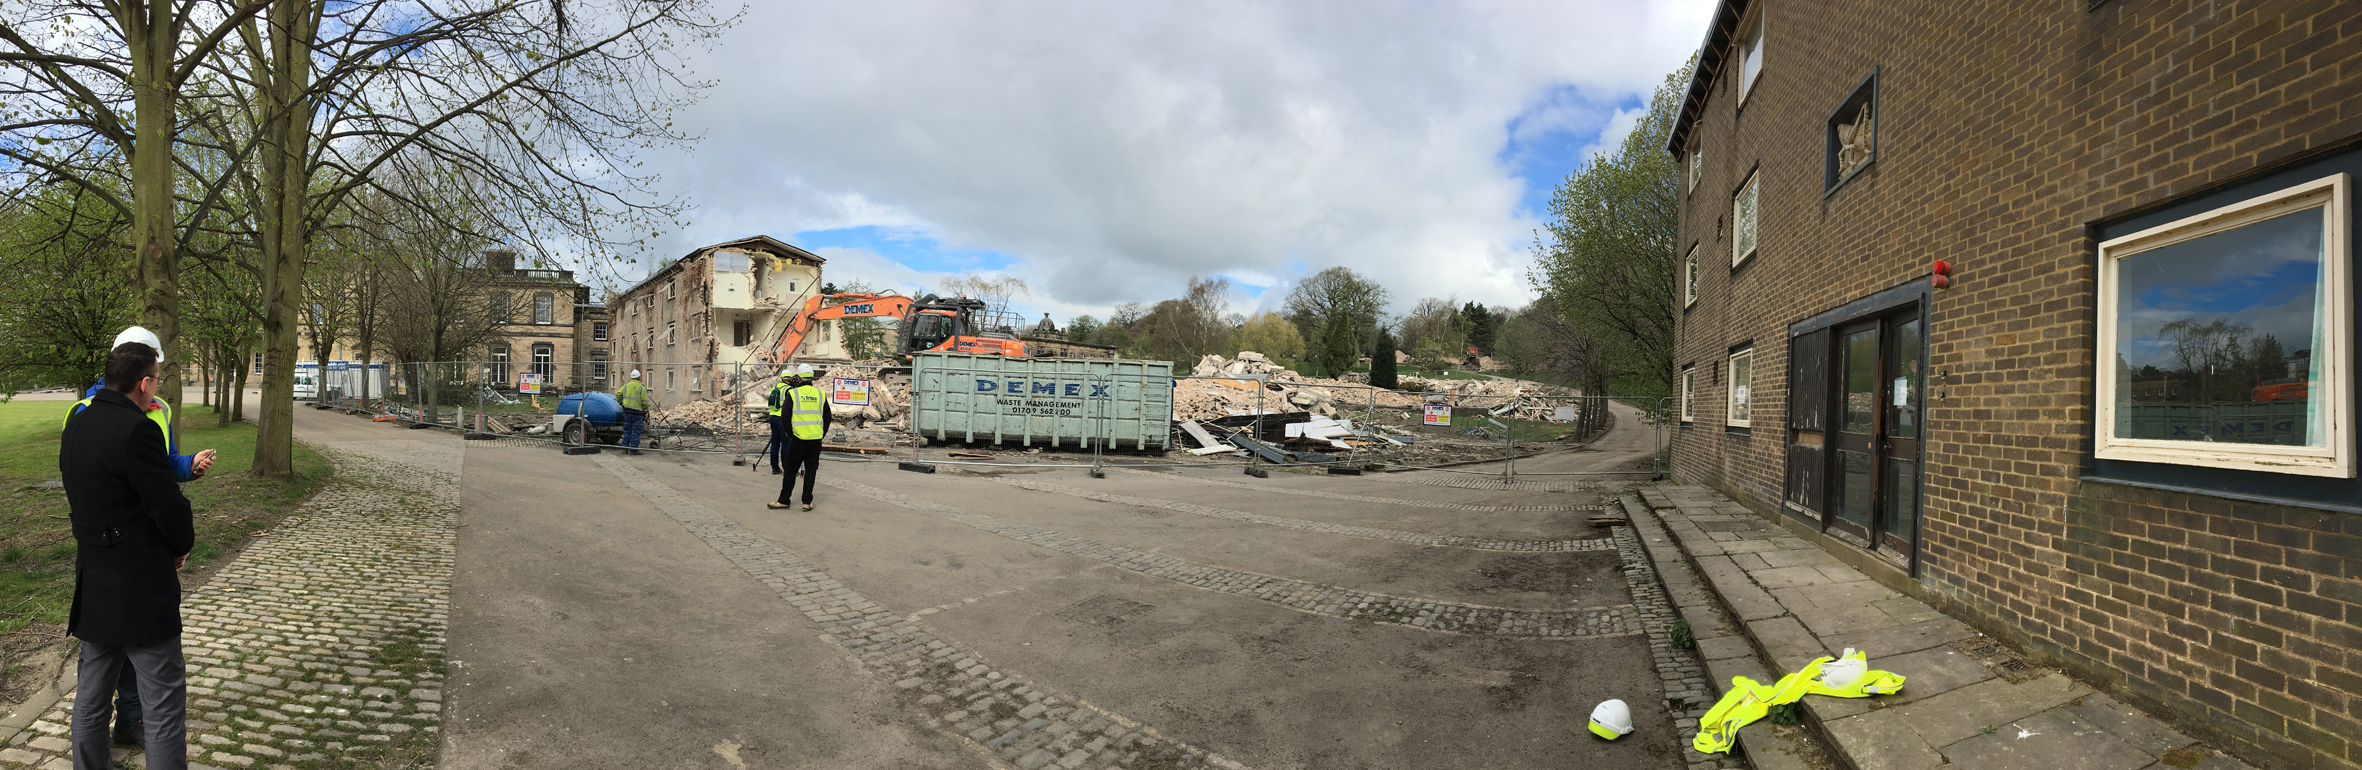 Pano Mansion Allendale Beaumont coming down Wentworth site Grasshopper 13Apr17